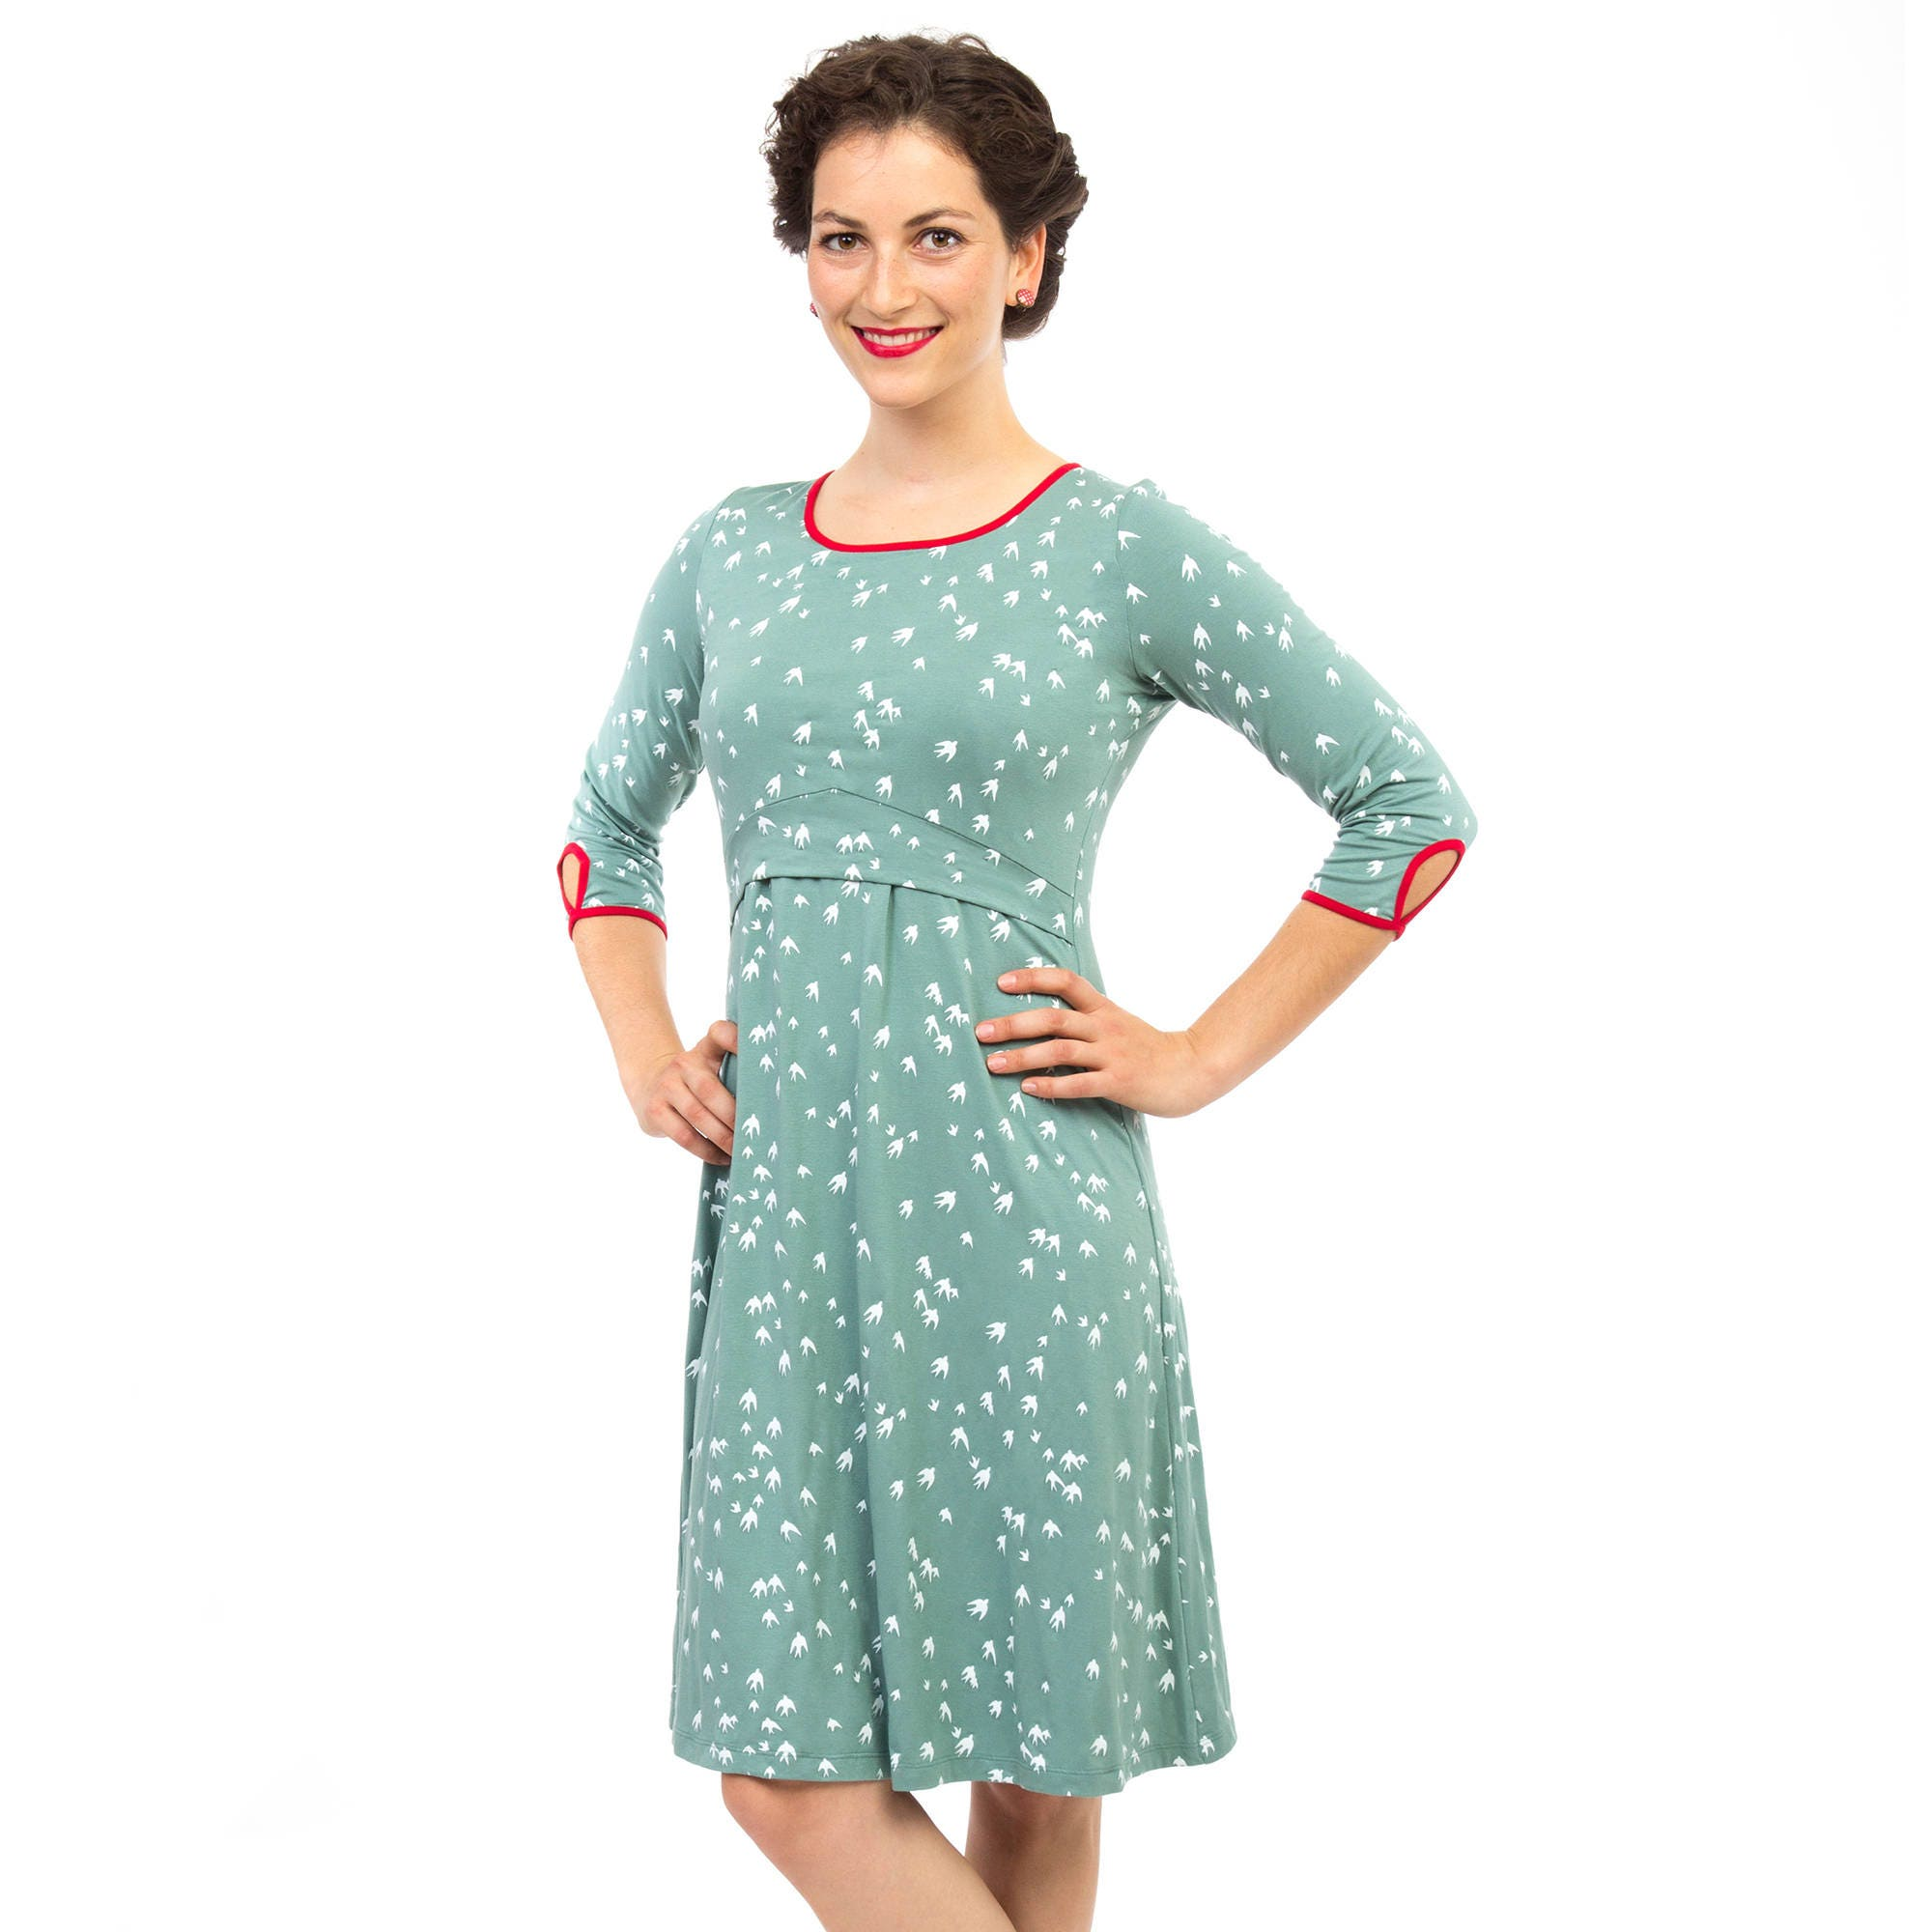 Maternity dress pregnant nursing mums special occasions